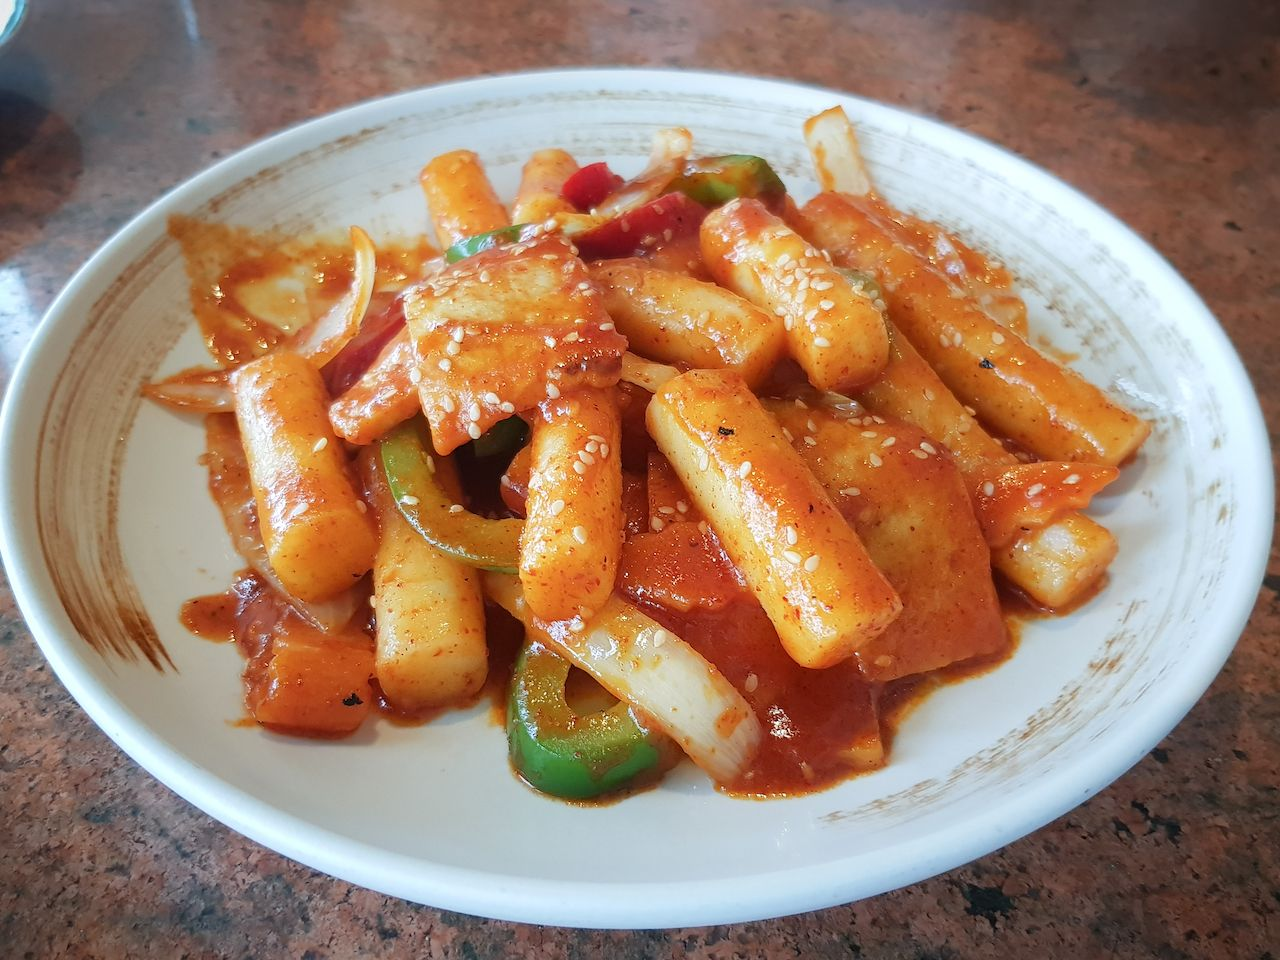 Spicy Korean food tteokbokki